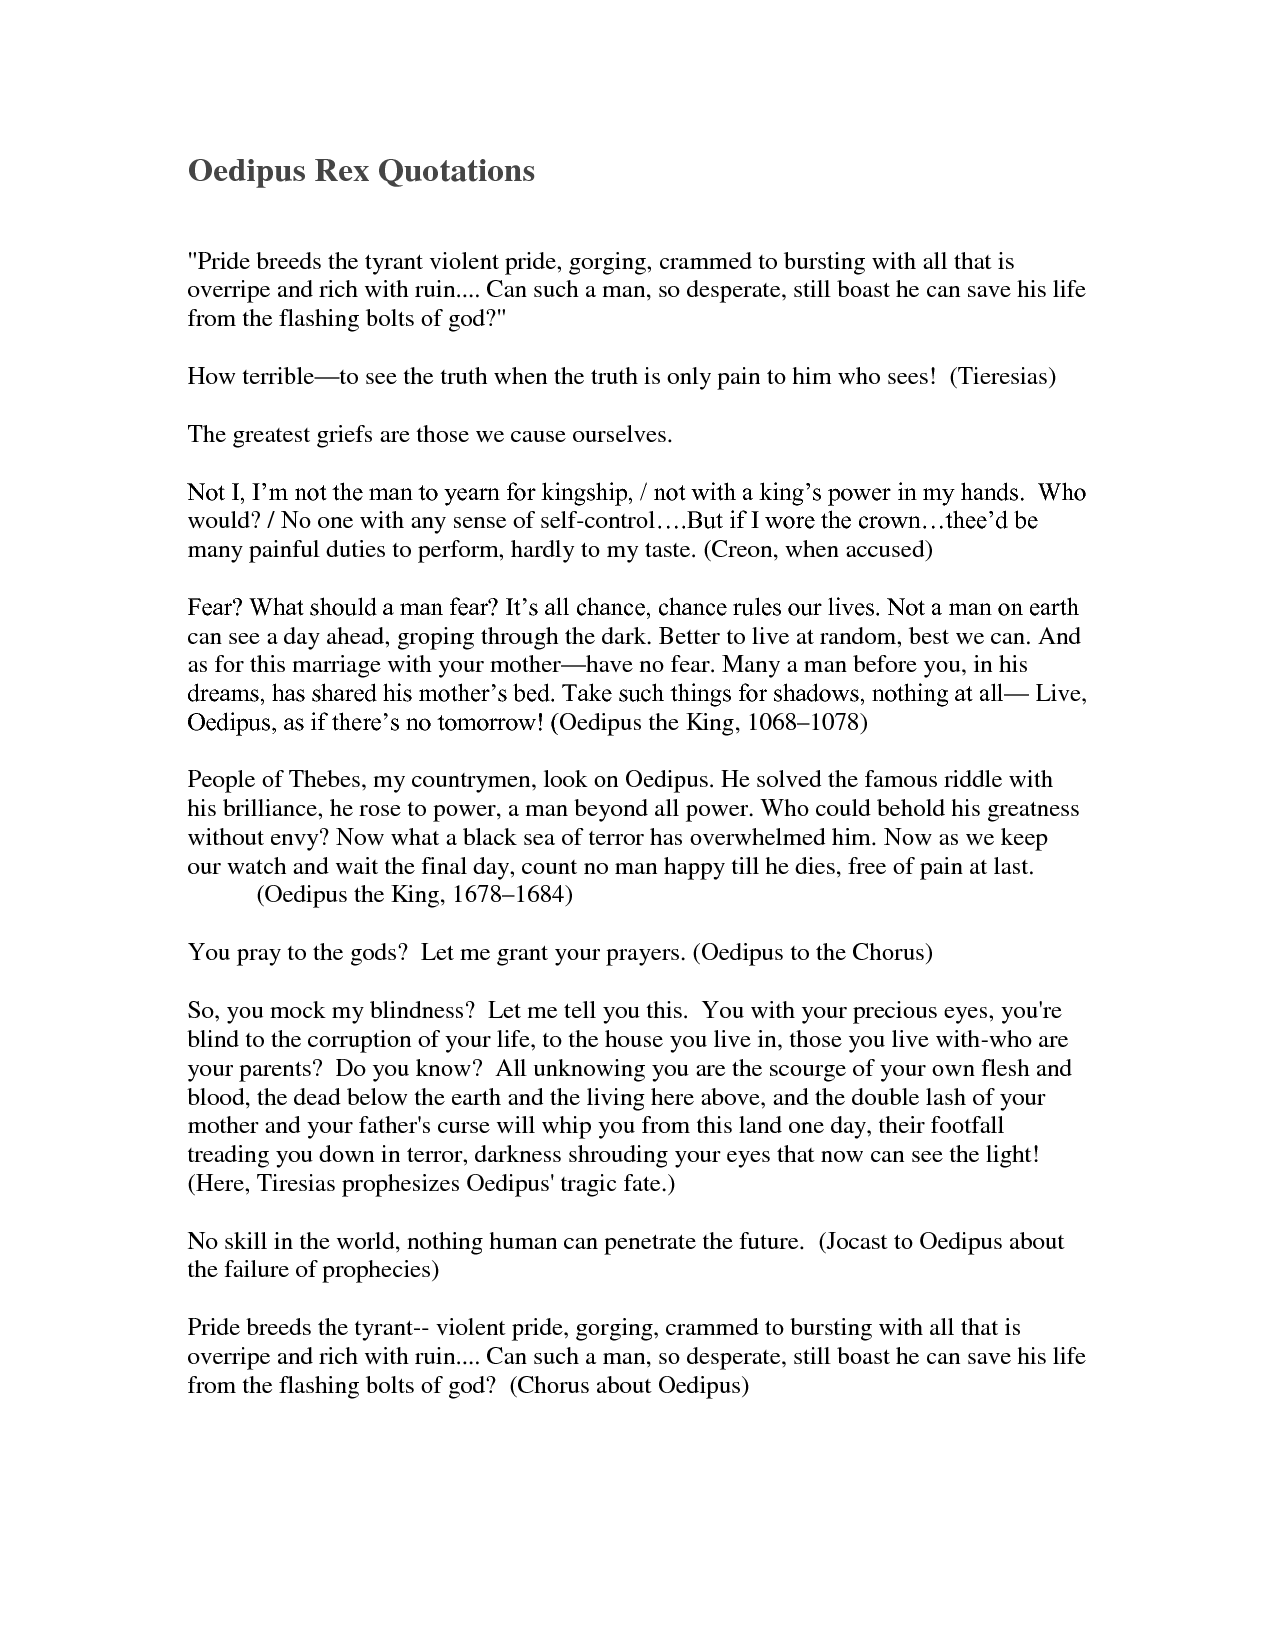 essay on oedipus png oedipus rex essays doorway